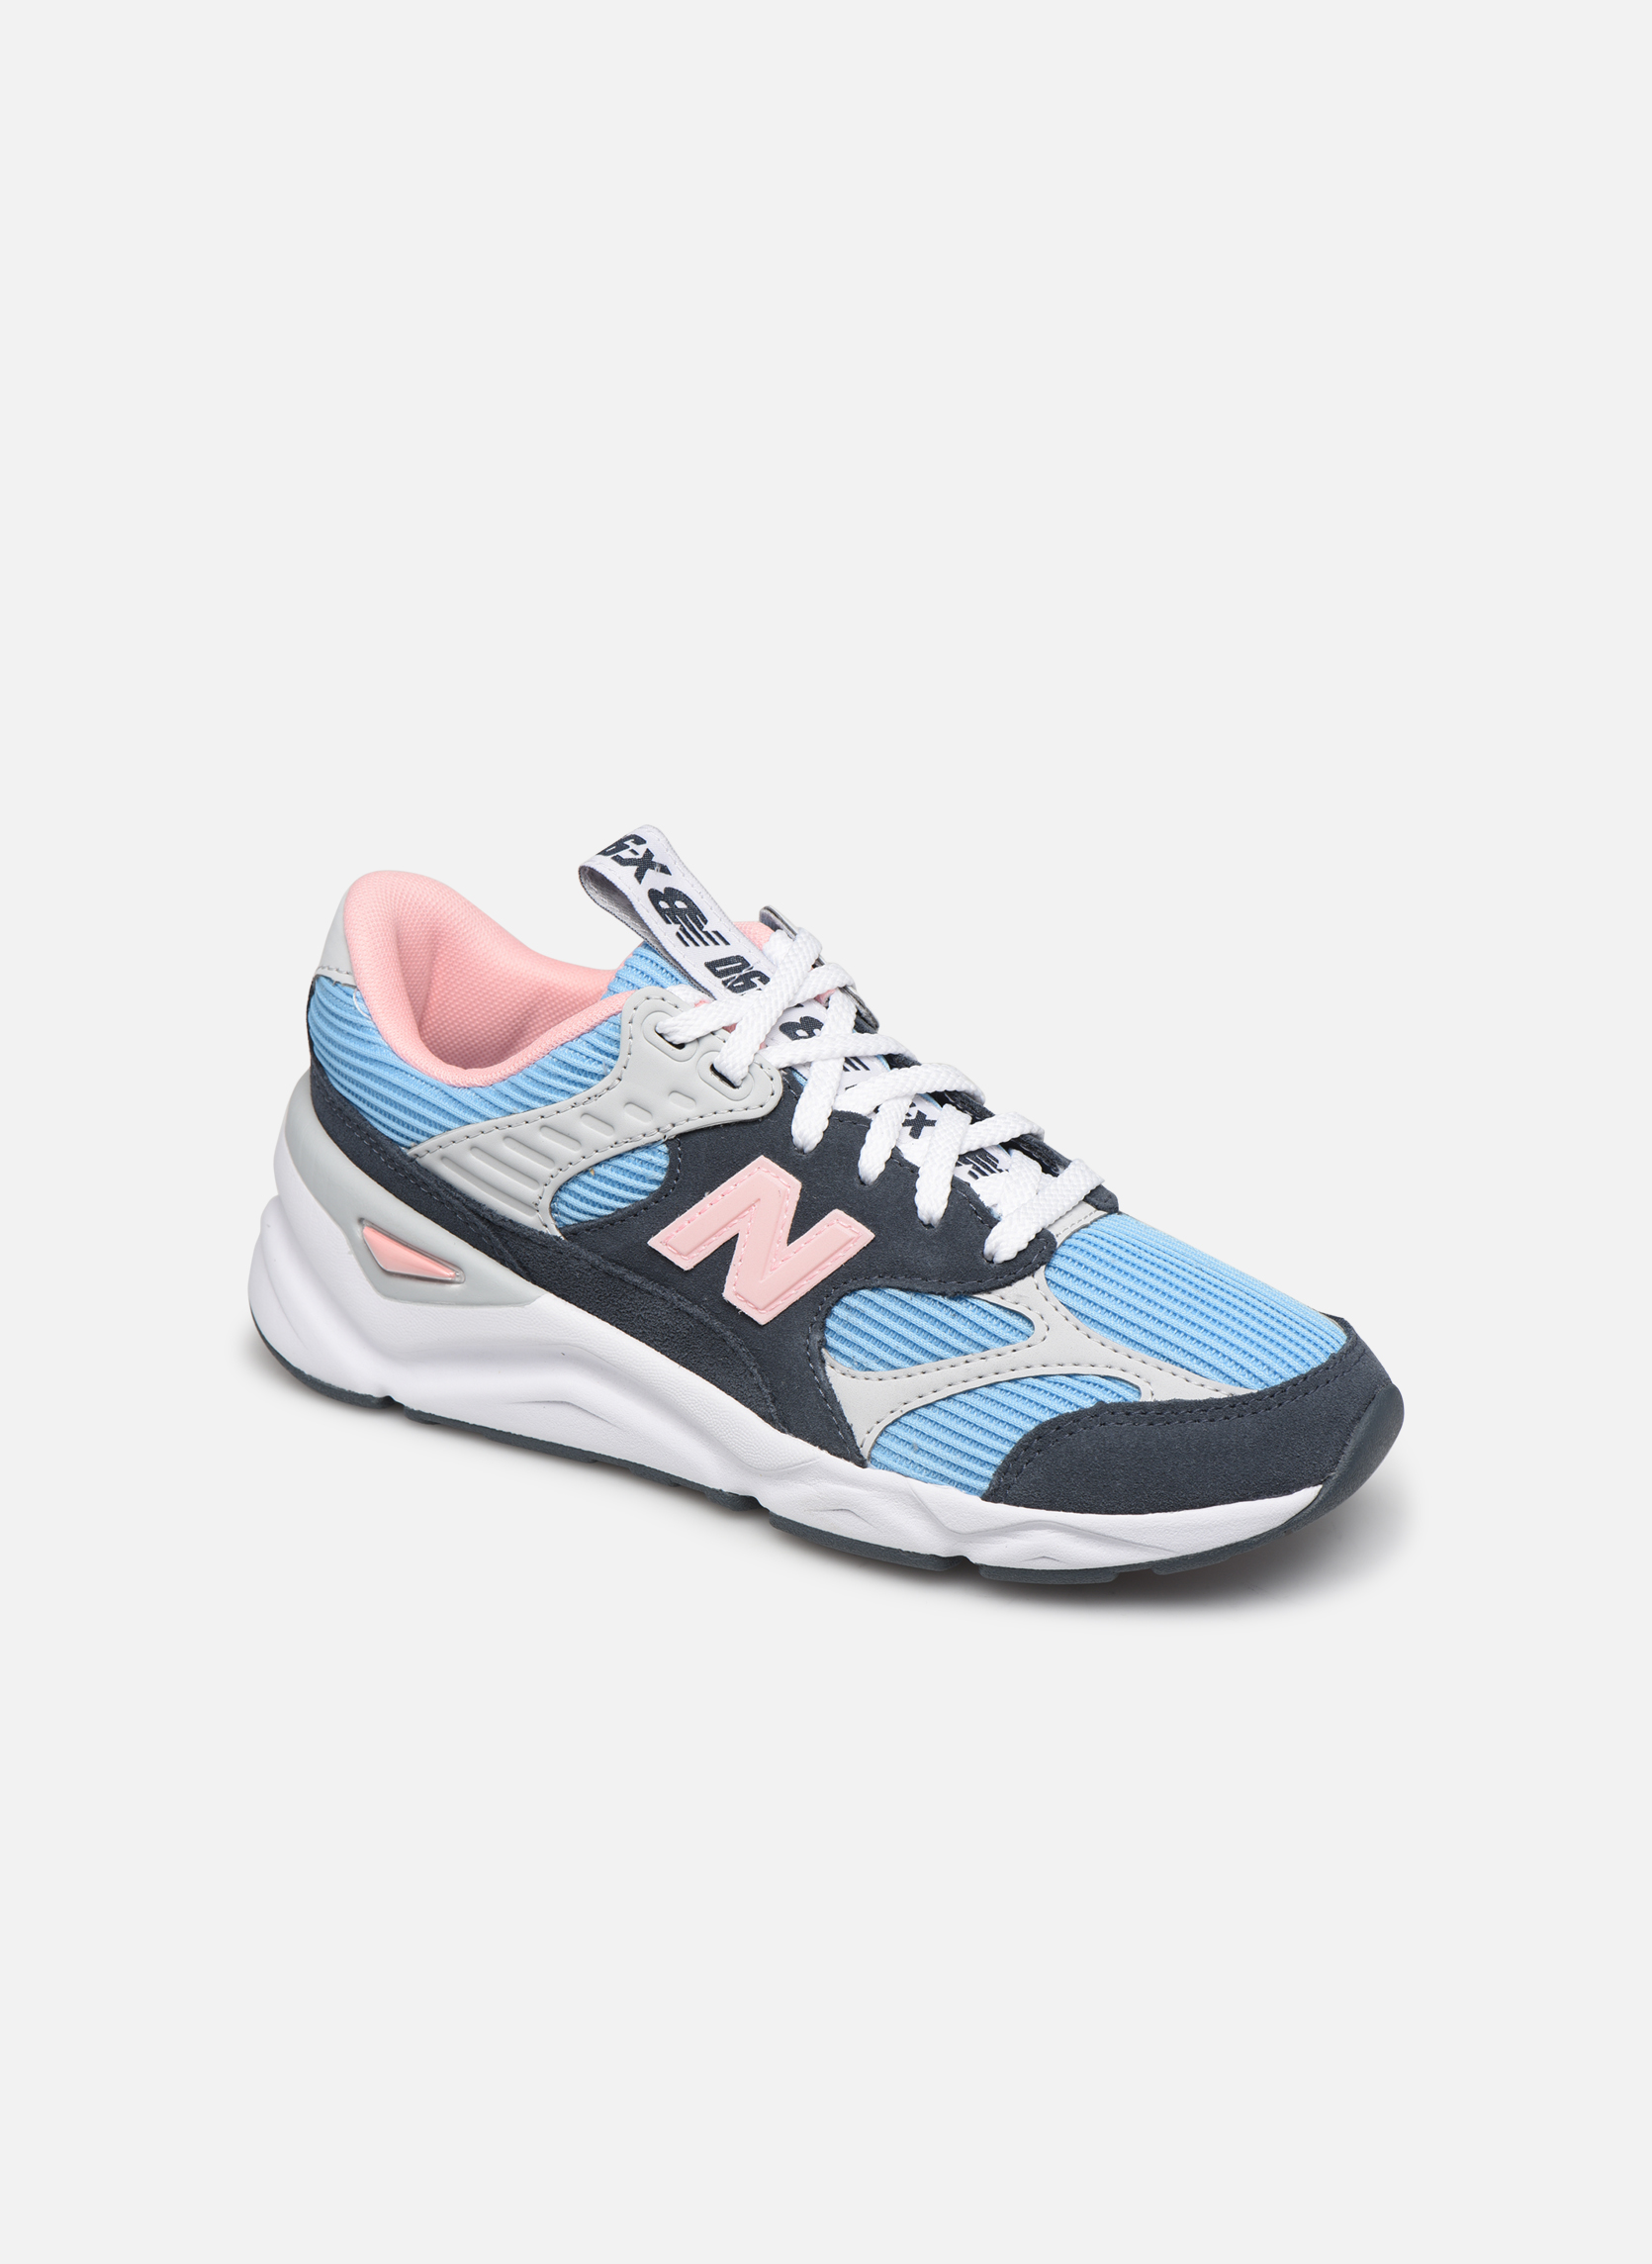 Sneakers WX-90 by New Balance